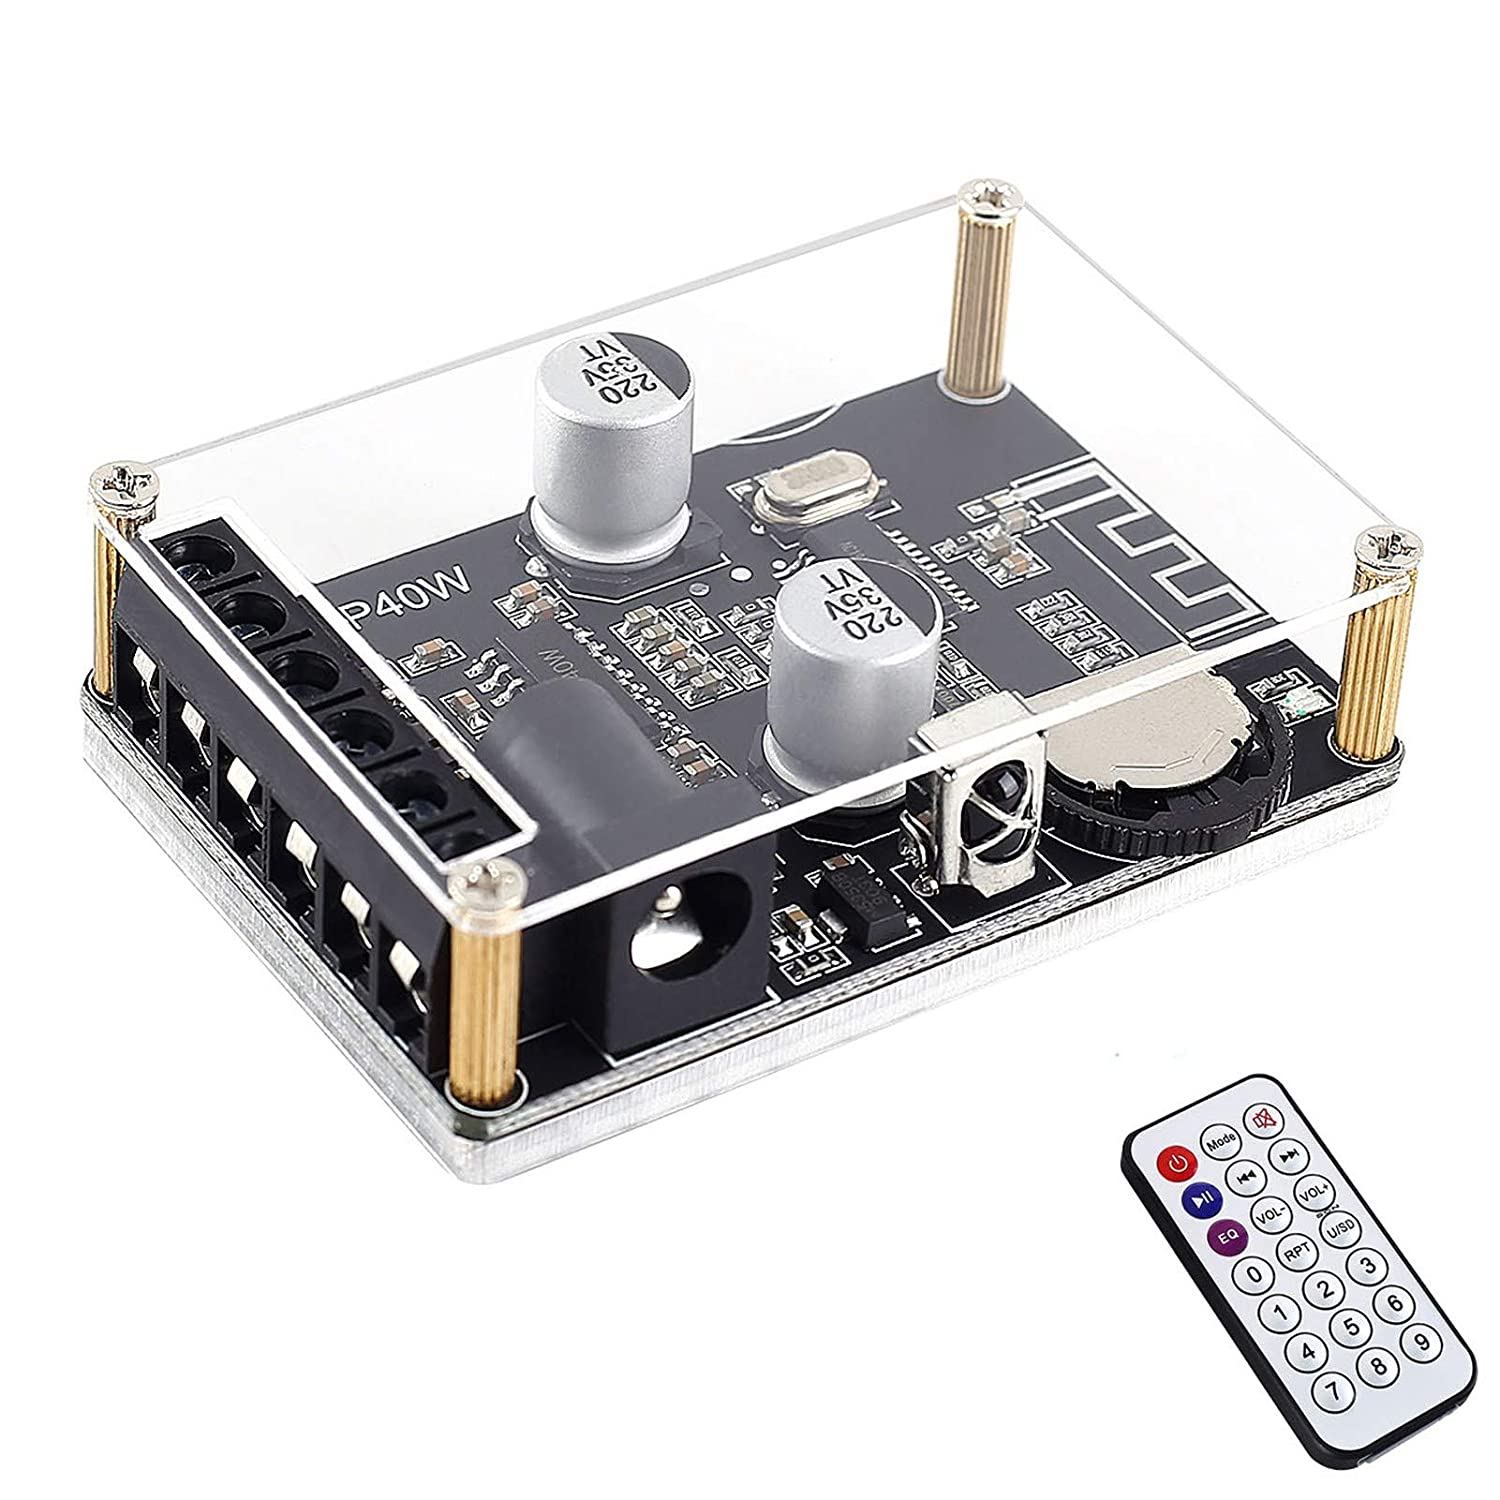 WHDTS Stereo famous Bluetooth Power Amplifier Board 5V Opening large release sale 12V 24V 30W 20W